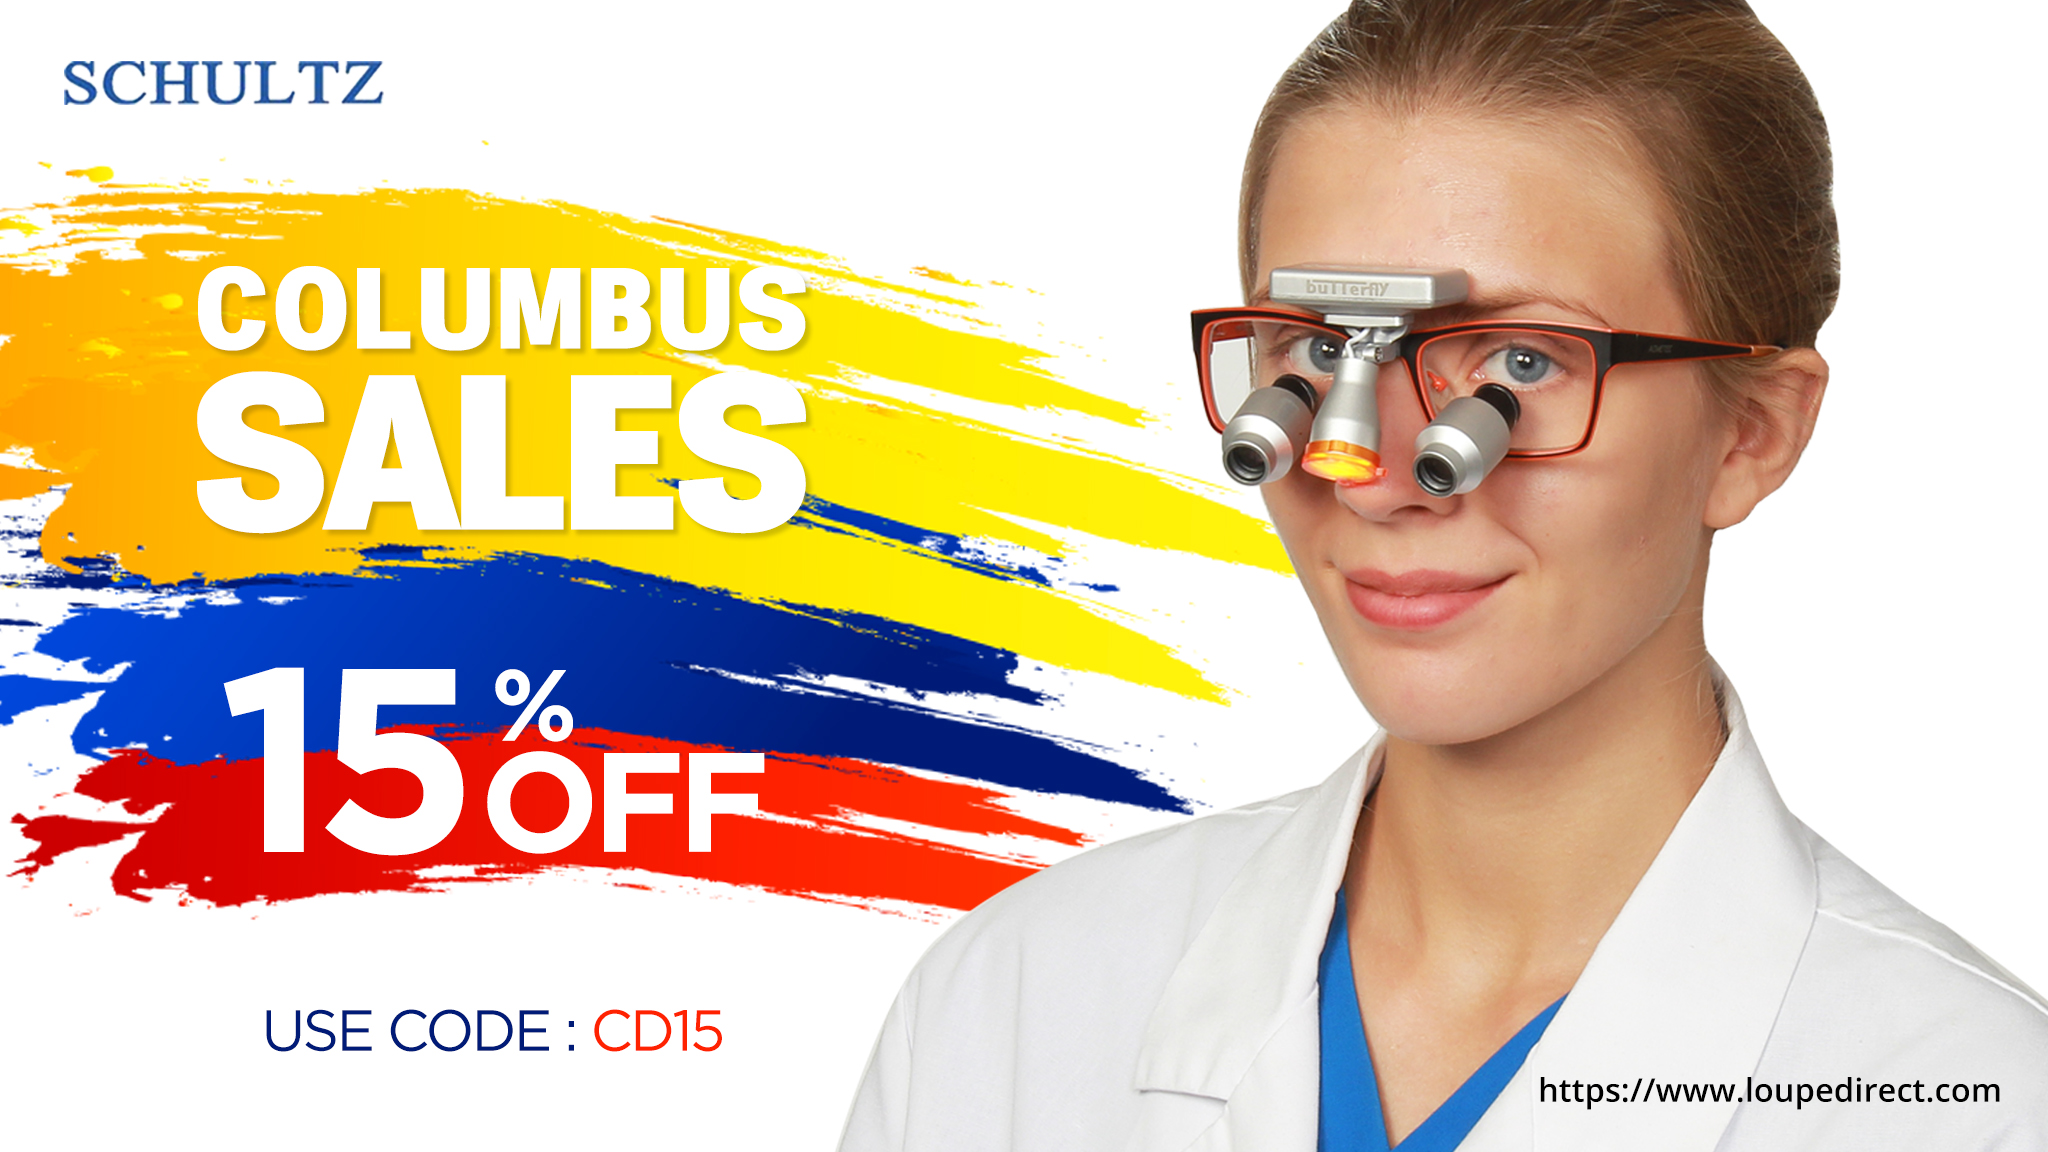 Buy Loupes And Headlights During Our Columbus Sale - SCHULTZ